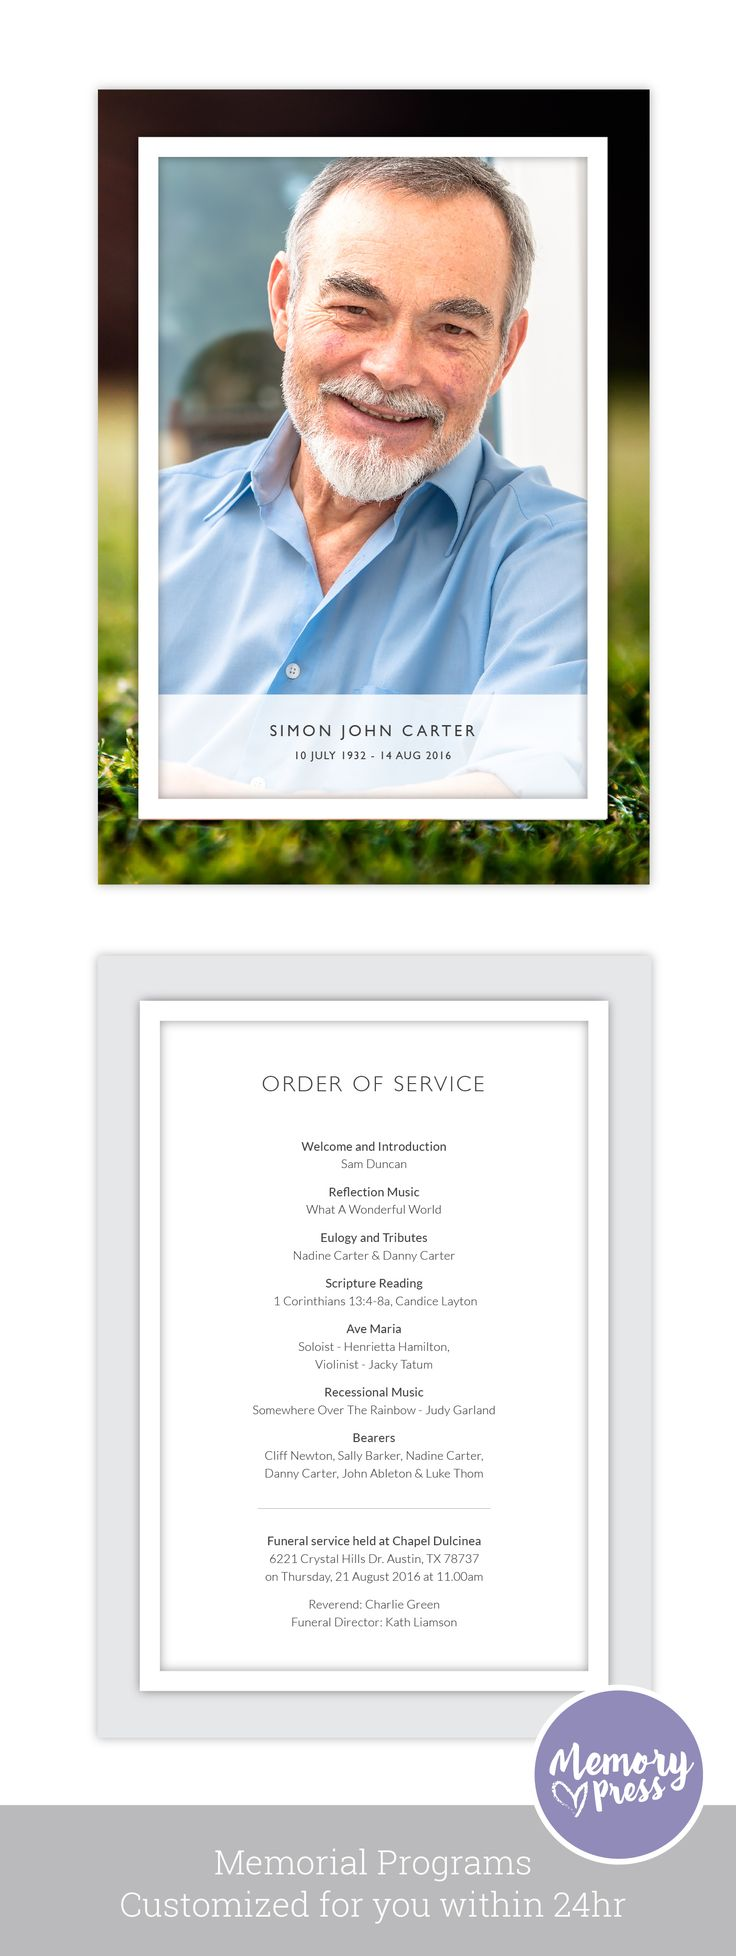 Best Funeral Program Templates Images On   Graphic